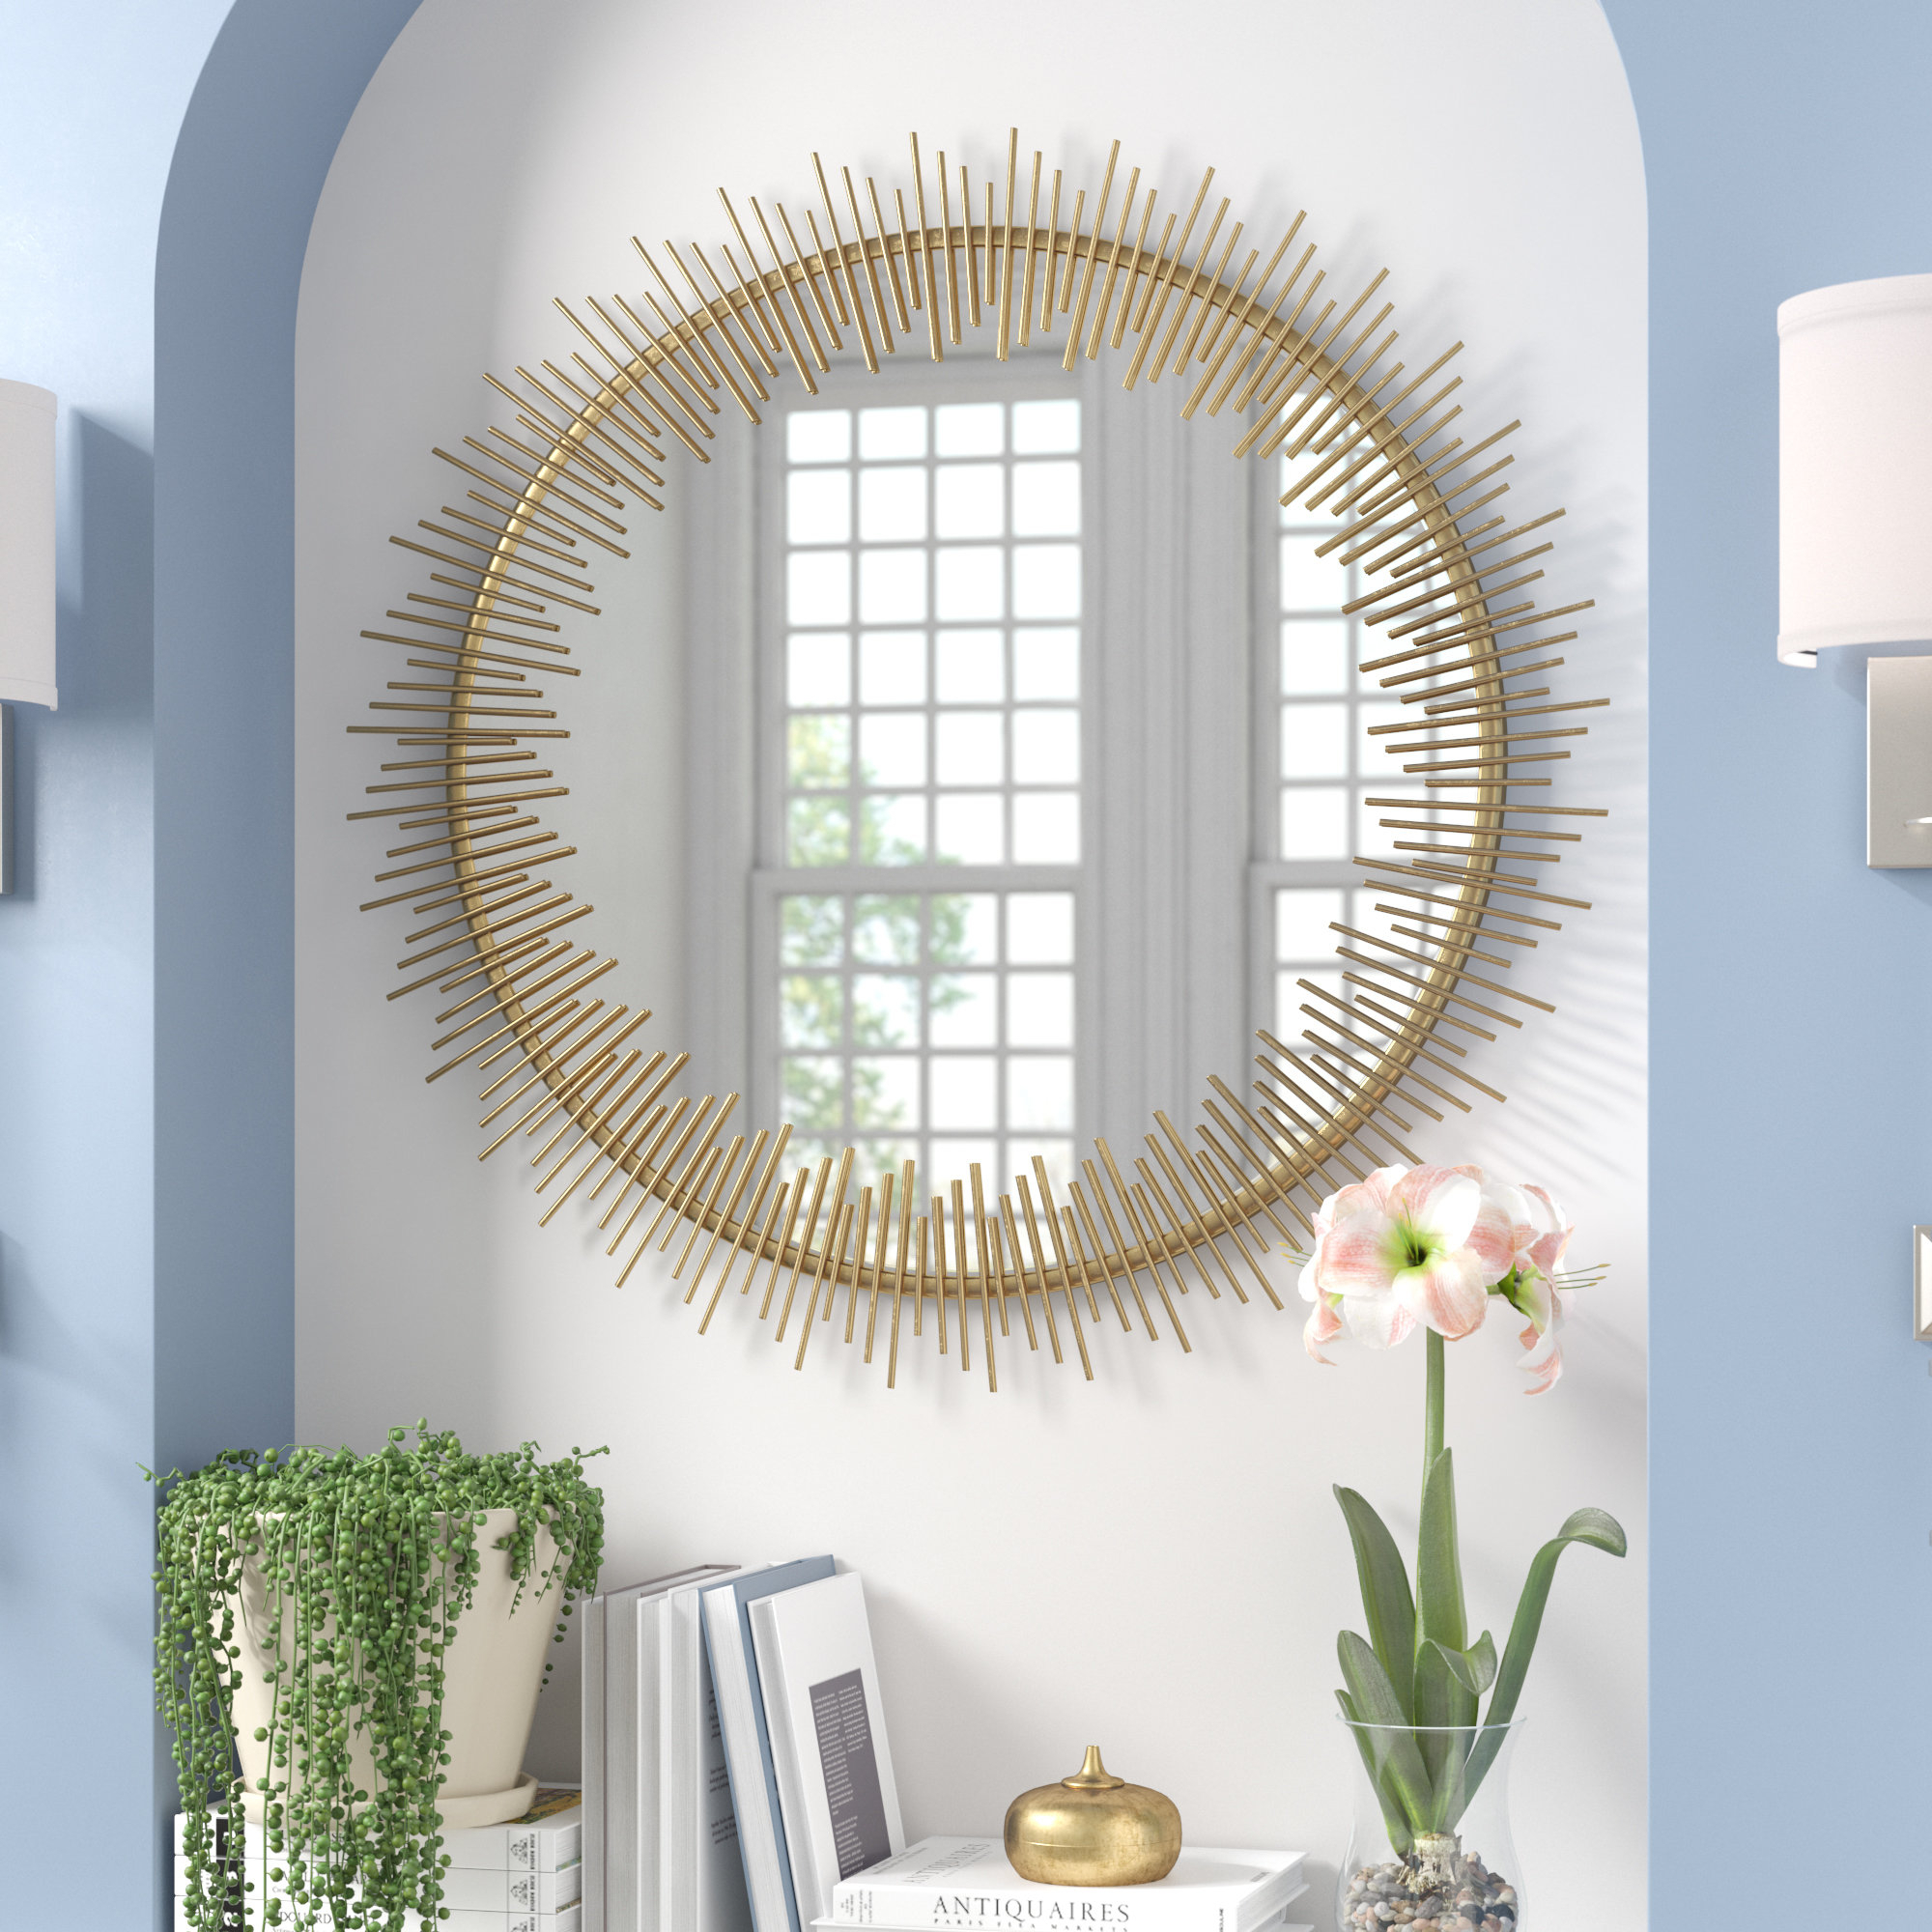 Wald Modern Wall Mirror Within Karn Vertical Round Resin Wall Mirrors (Image 17 of 20)